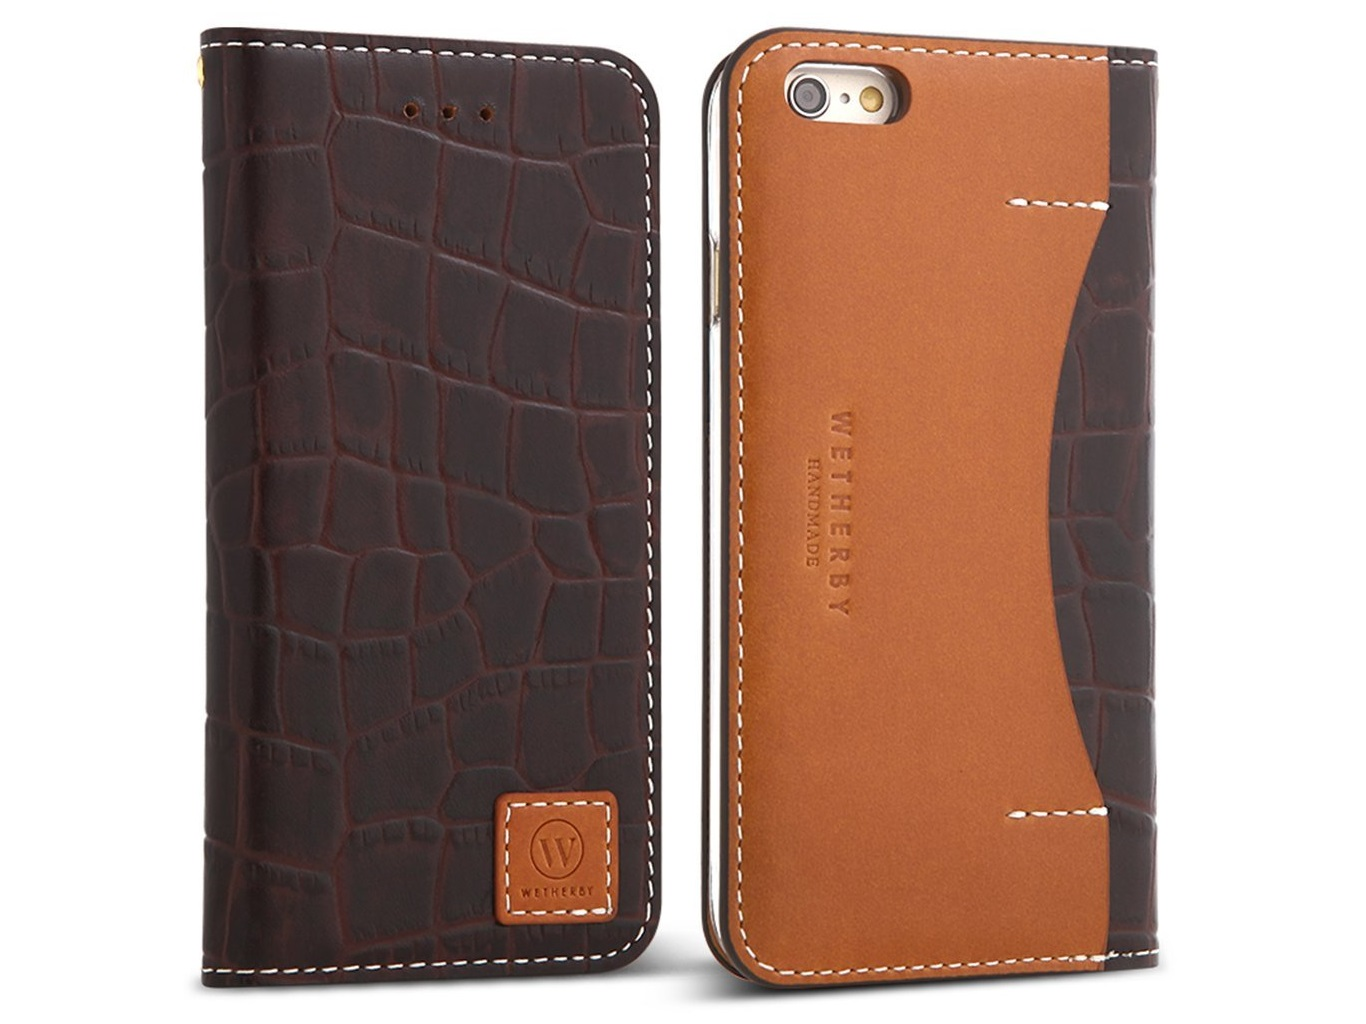 DesignSkin WETHERBY PREMIUM CROCO genuine leather case